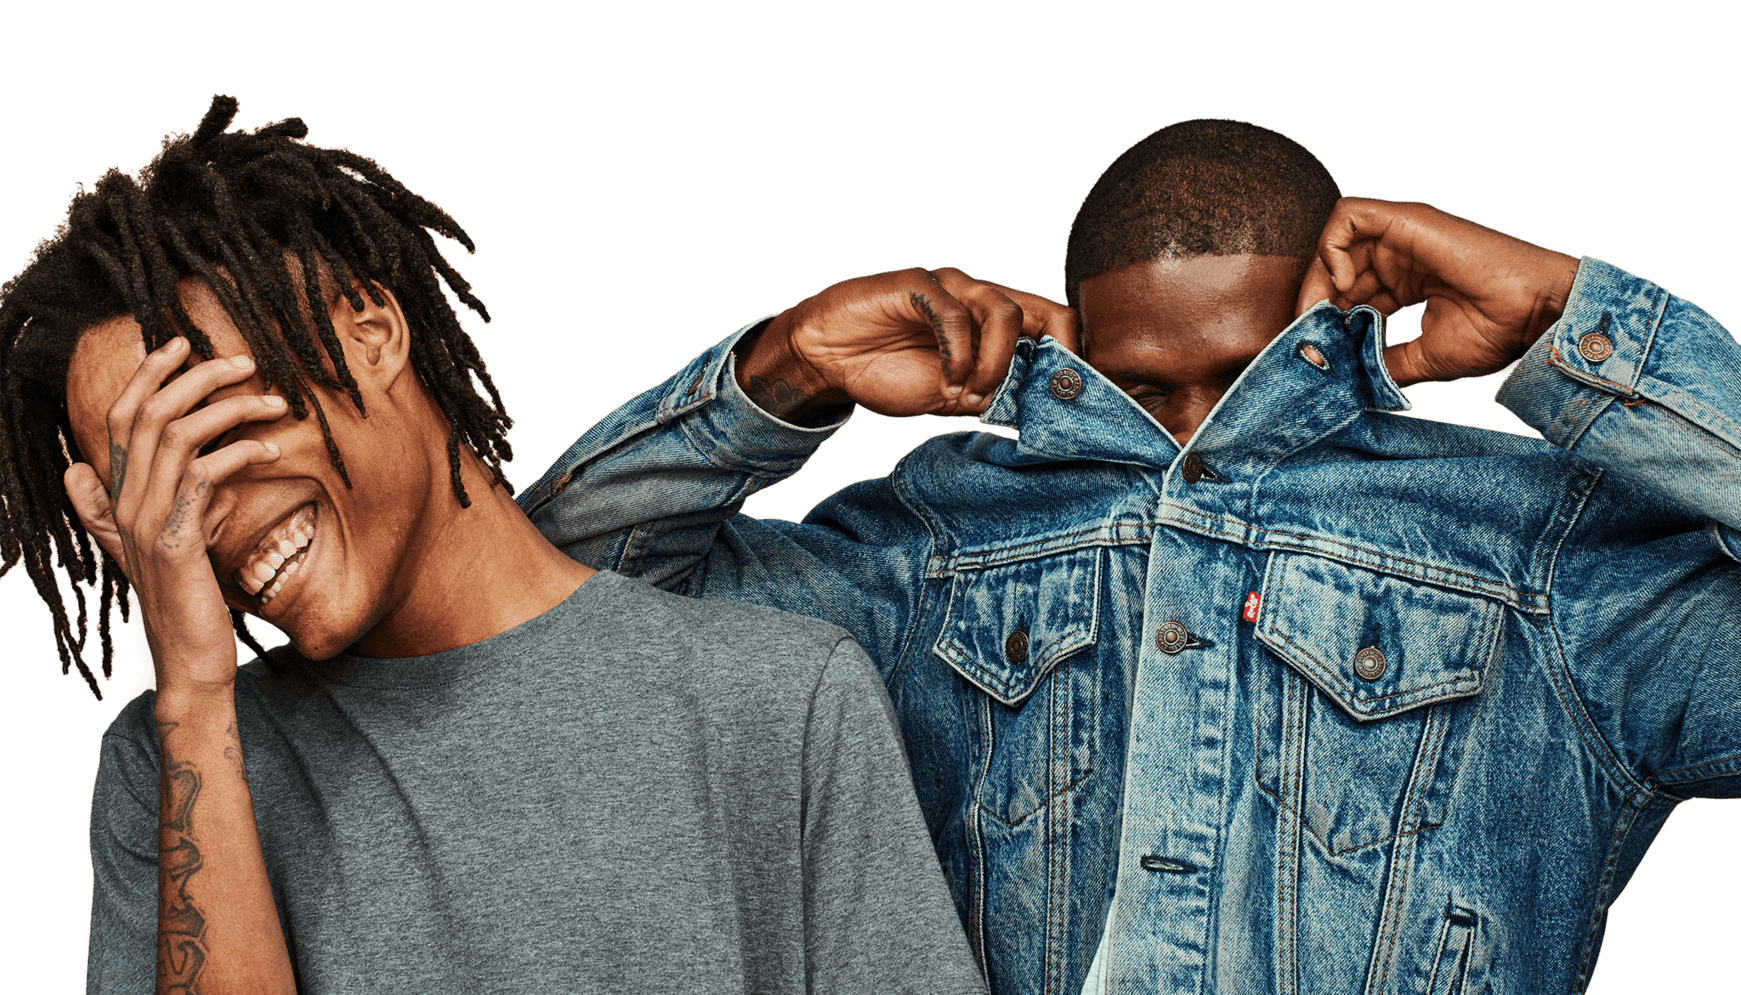 Young men with their faces obscured